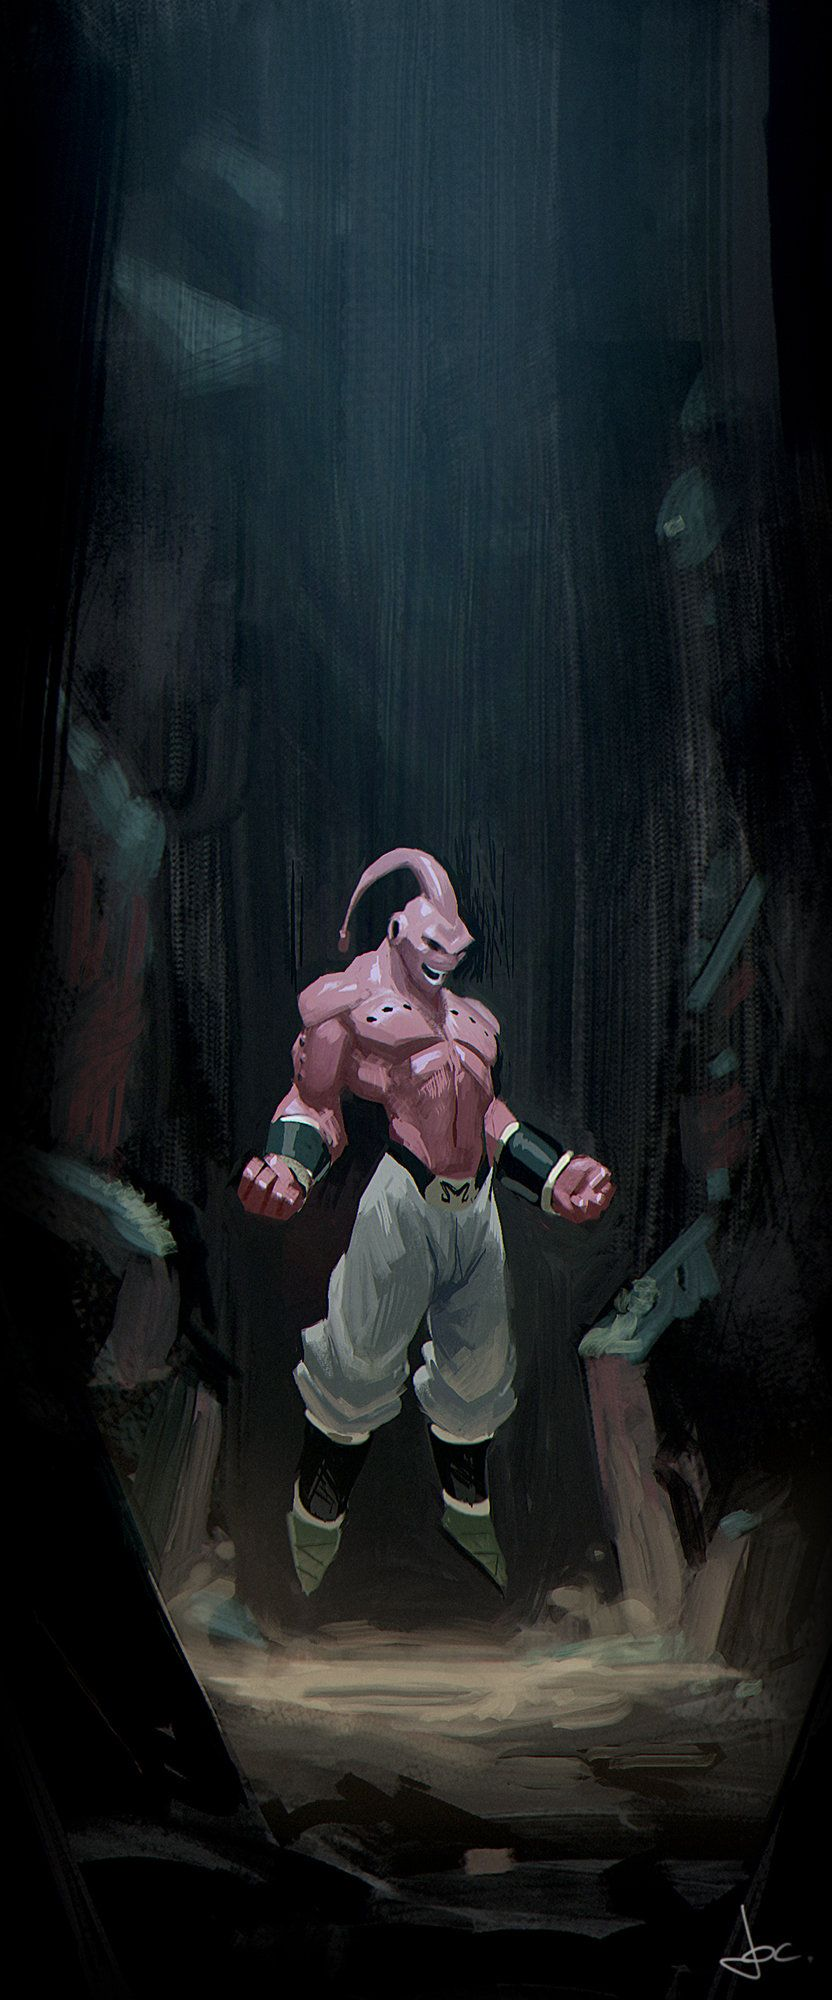 Kid Buu may have been the most ruthless, but Super Buu was the coolest. Artwork by Jocelyn Millet.